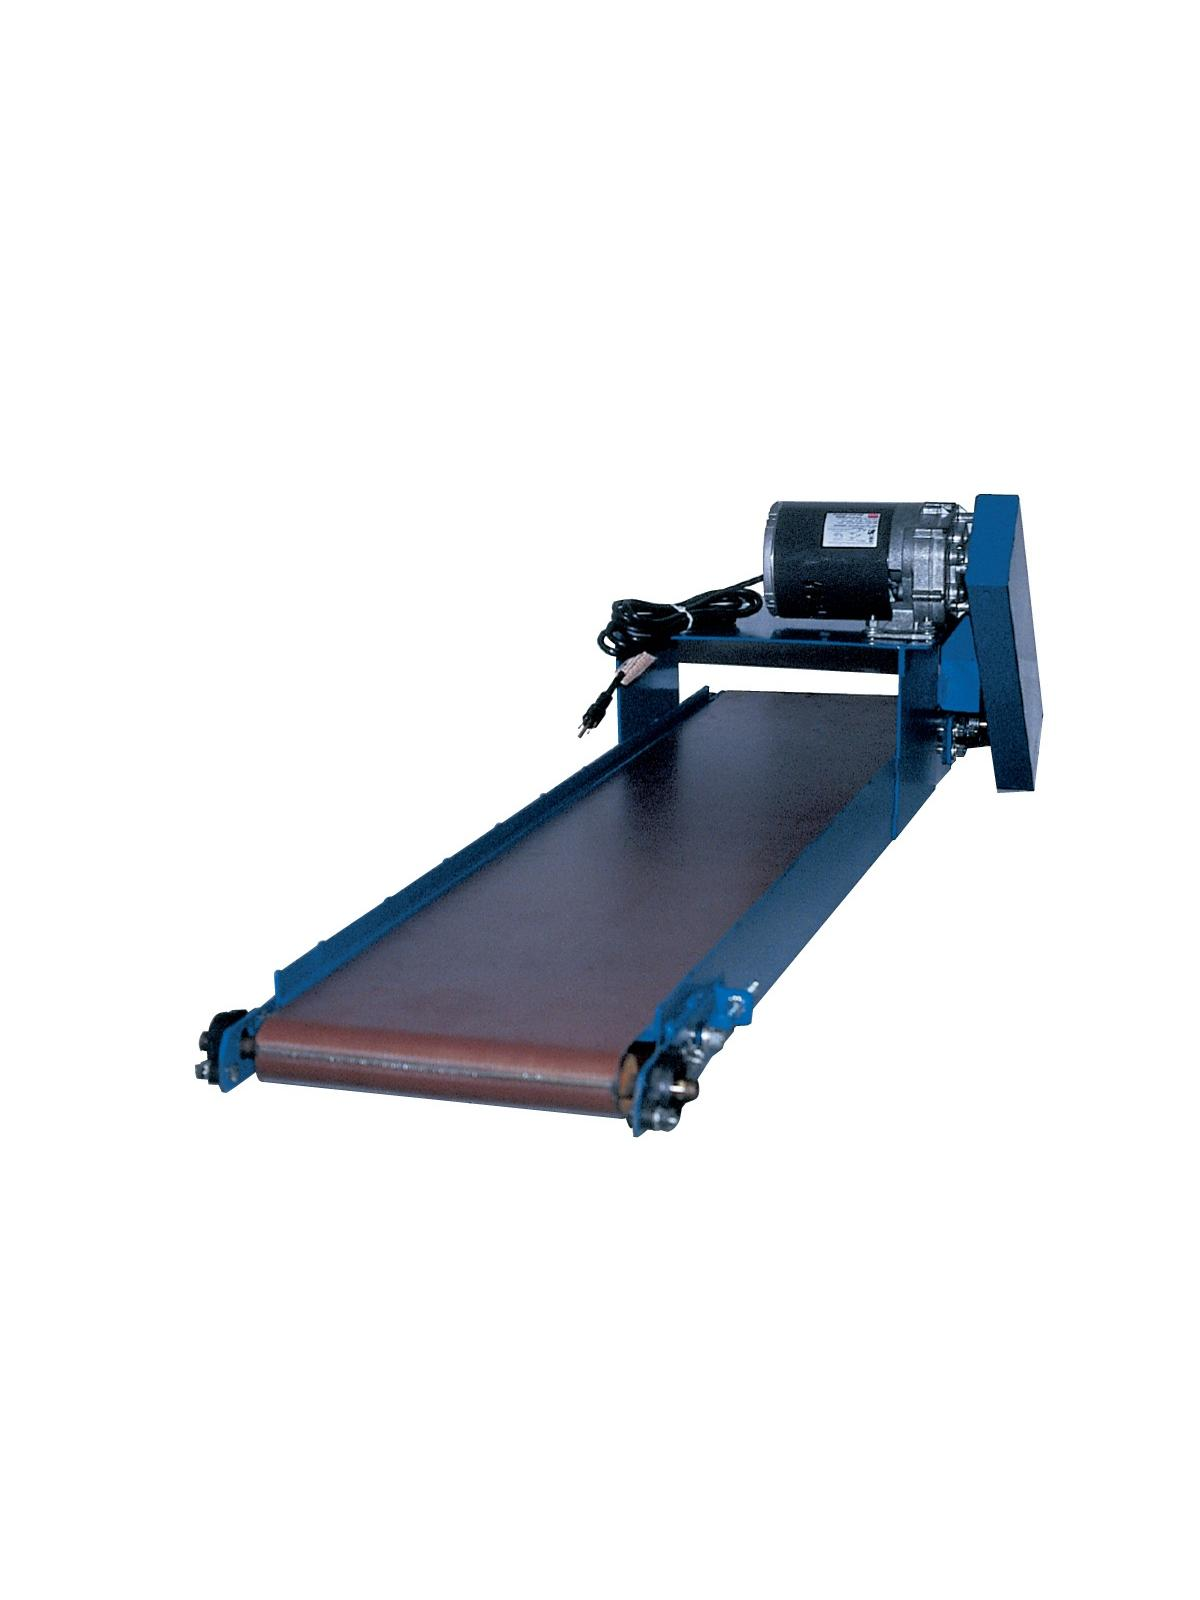 Slim Line Power Conveyor At Nationwide Industrial Supply Llc